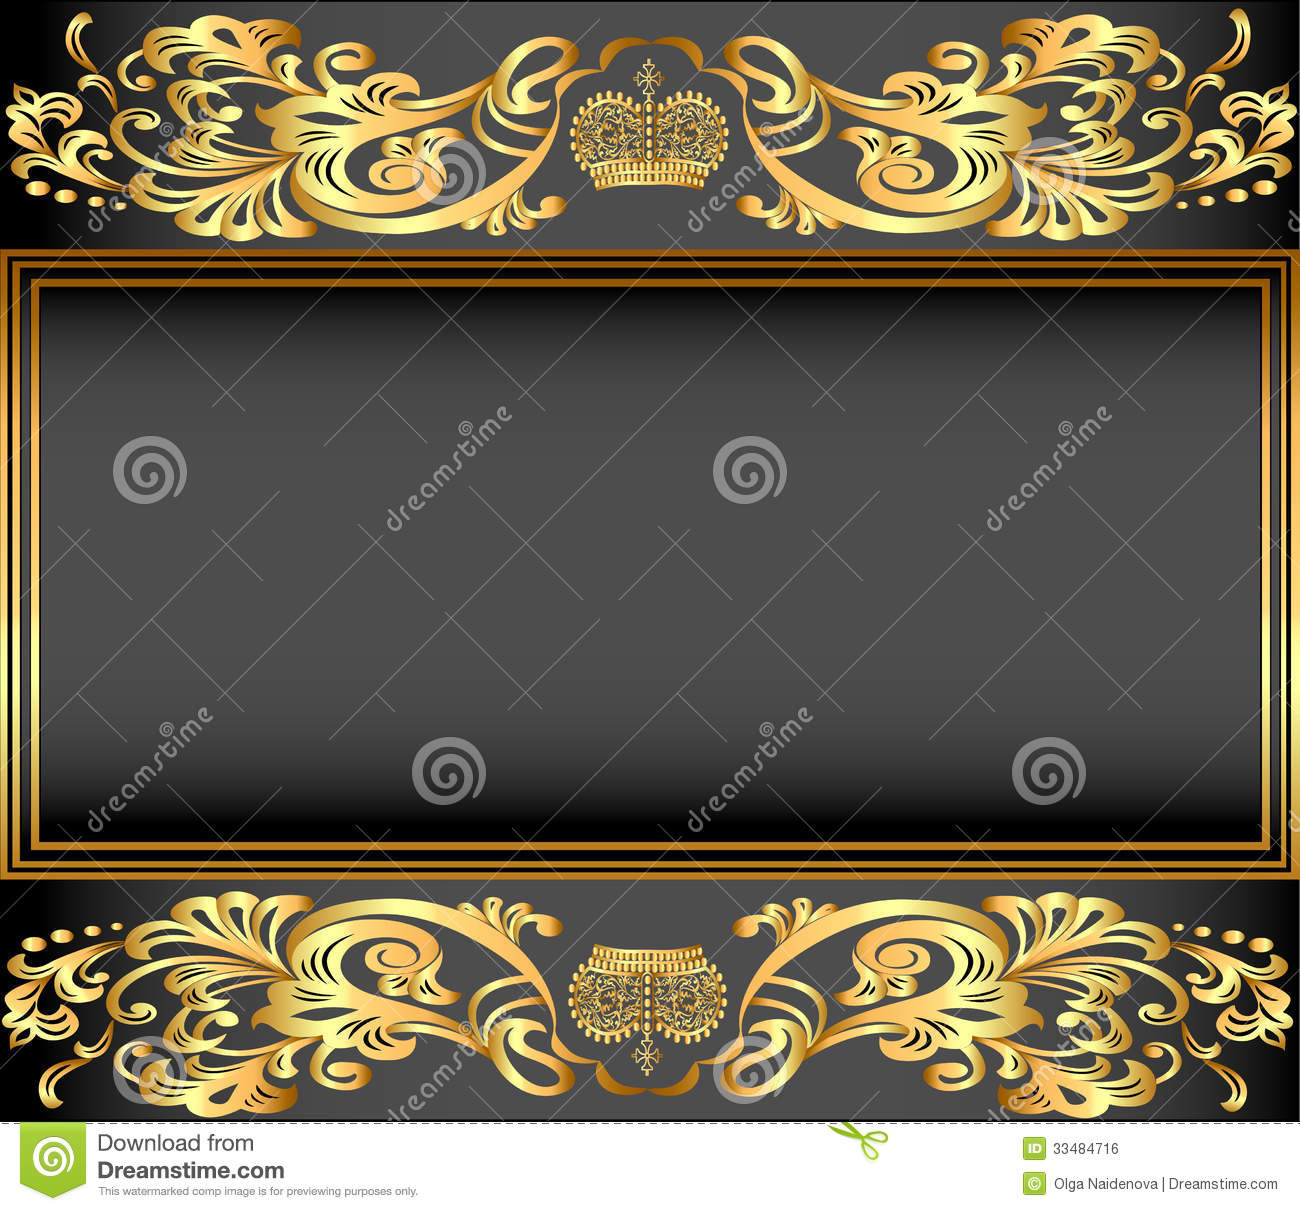 Gold crown background - photo#44